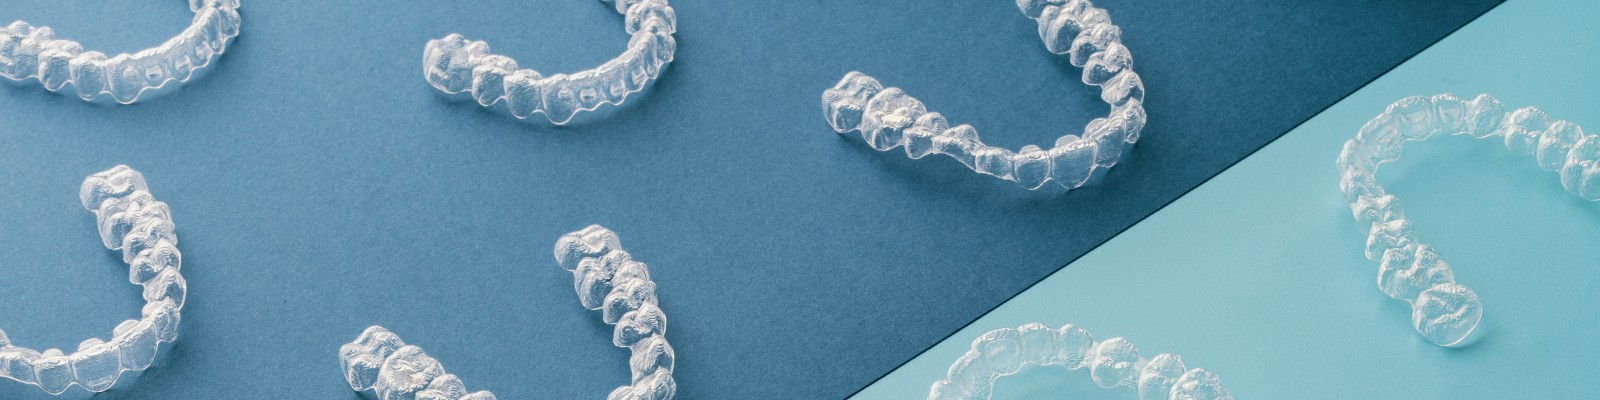 Invisalign aligners laid out on a blue background